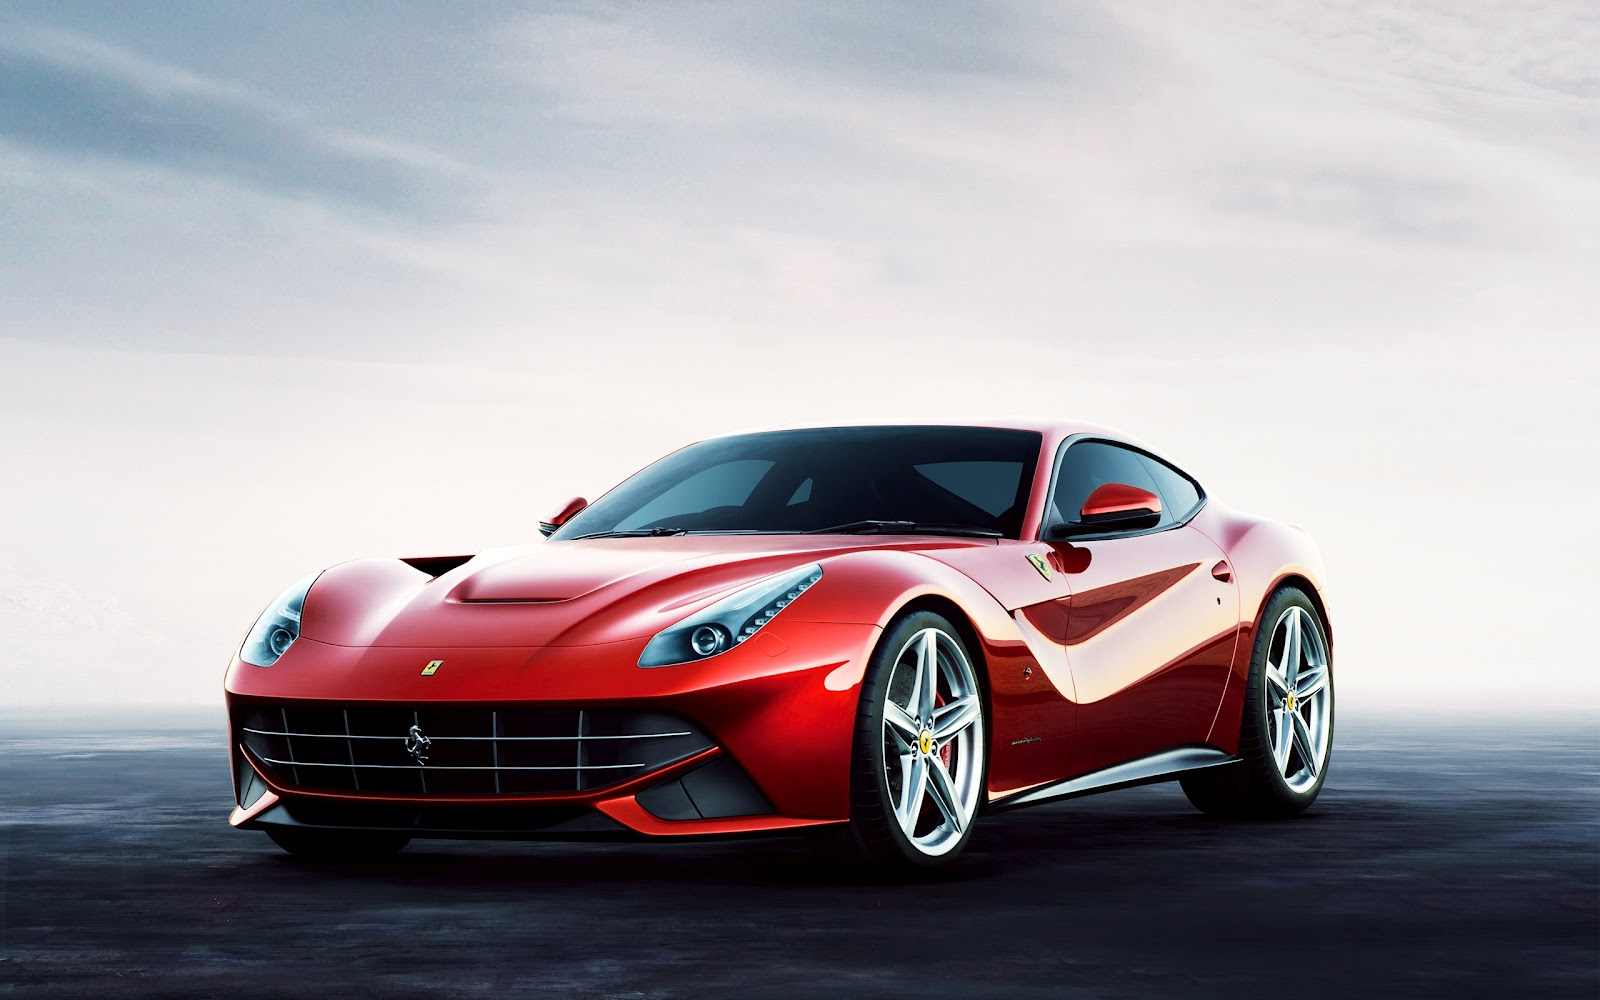 Ferrari Berlinetta Wallpaper Sport Cars 2015